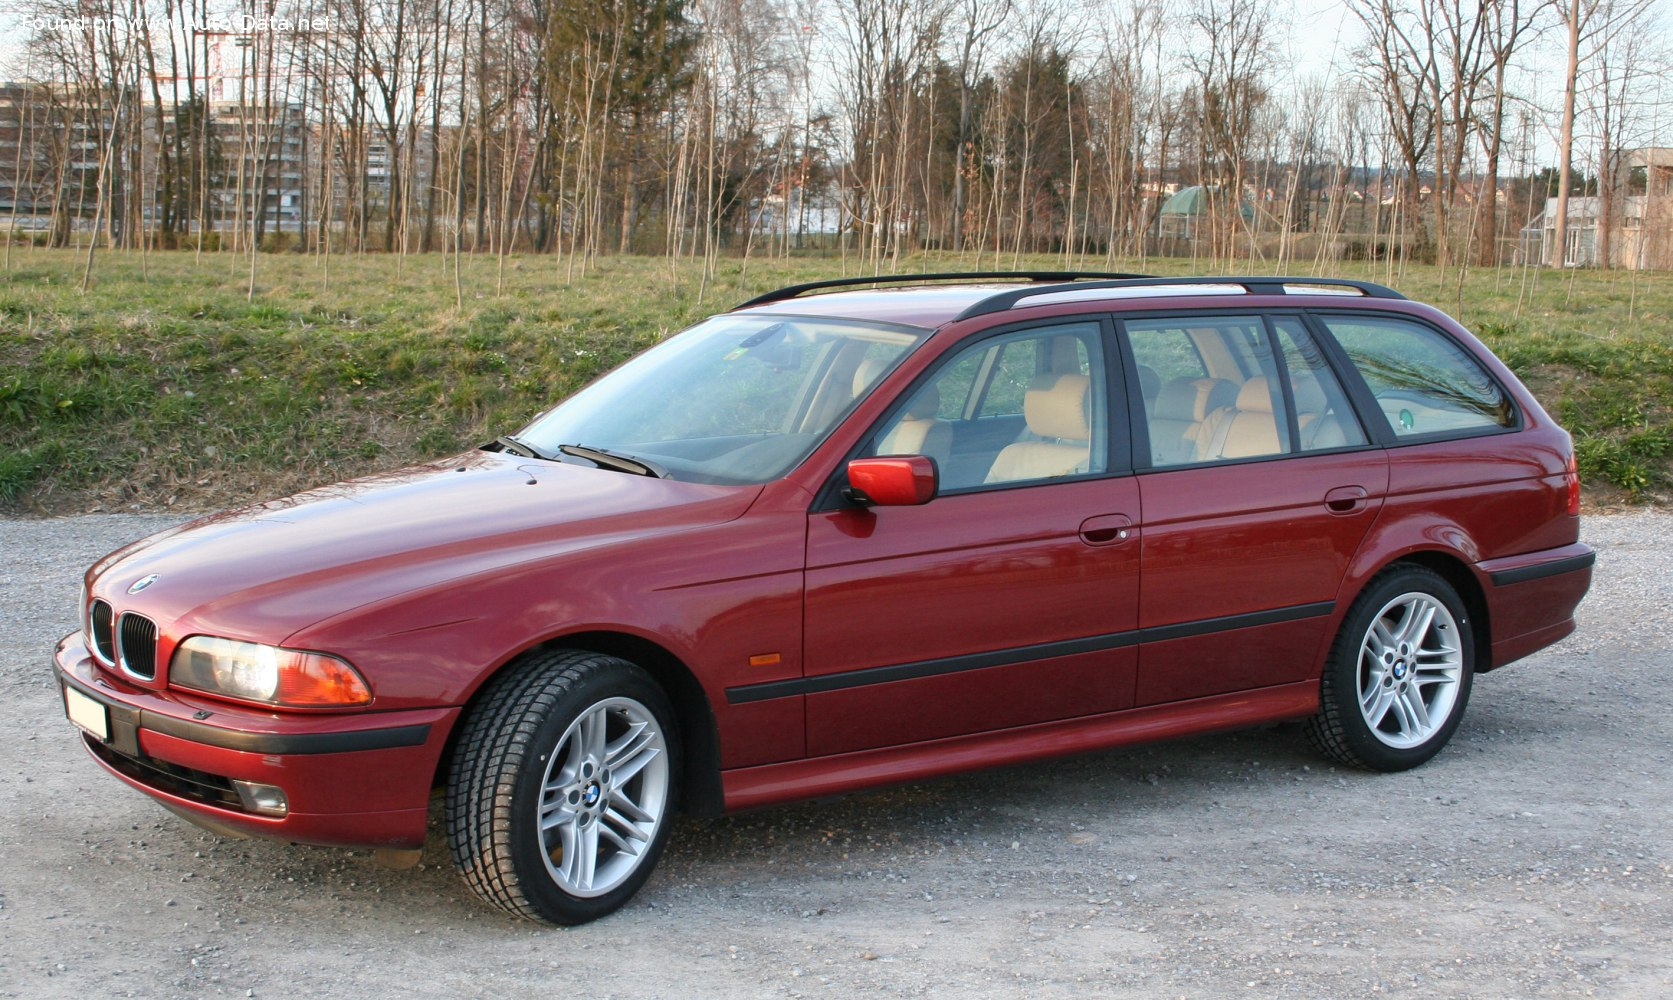 1998 Bmw 5 Series Touring E39 528i 193 Hp Technical Specs Data Fuel Consumption Dimensions